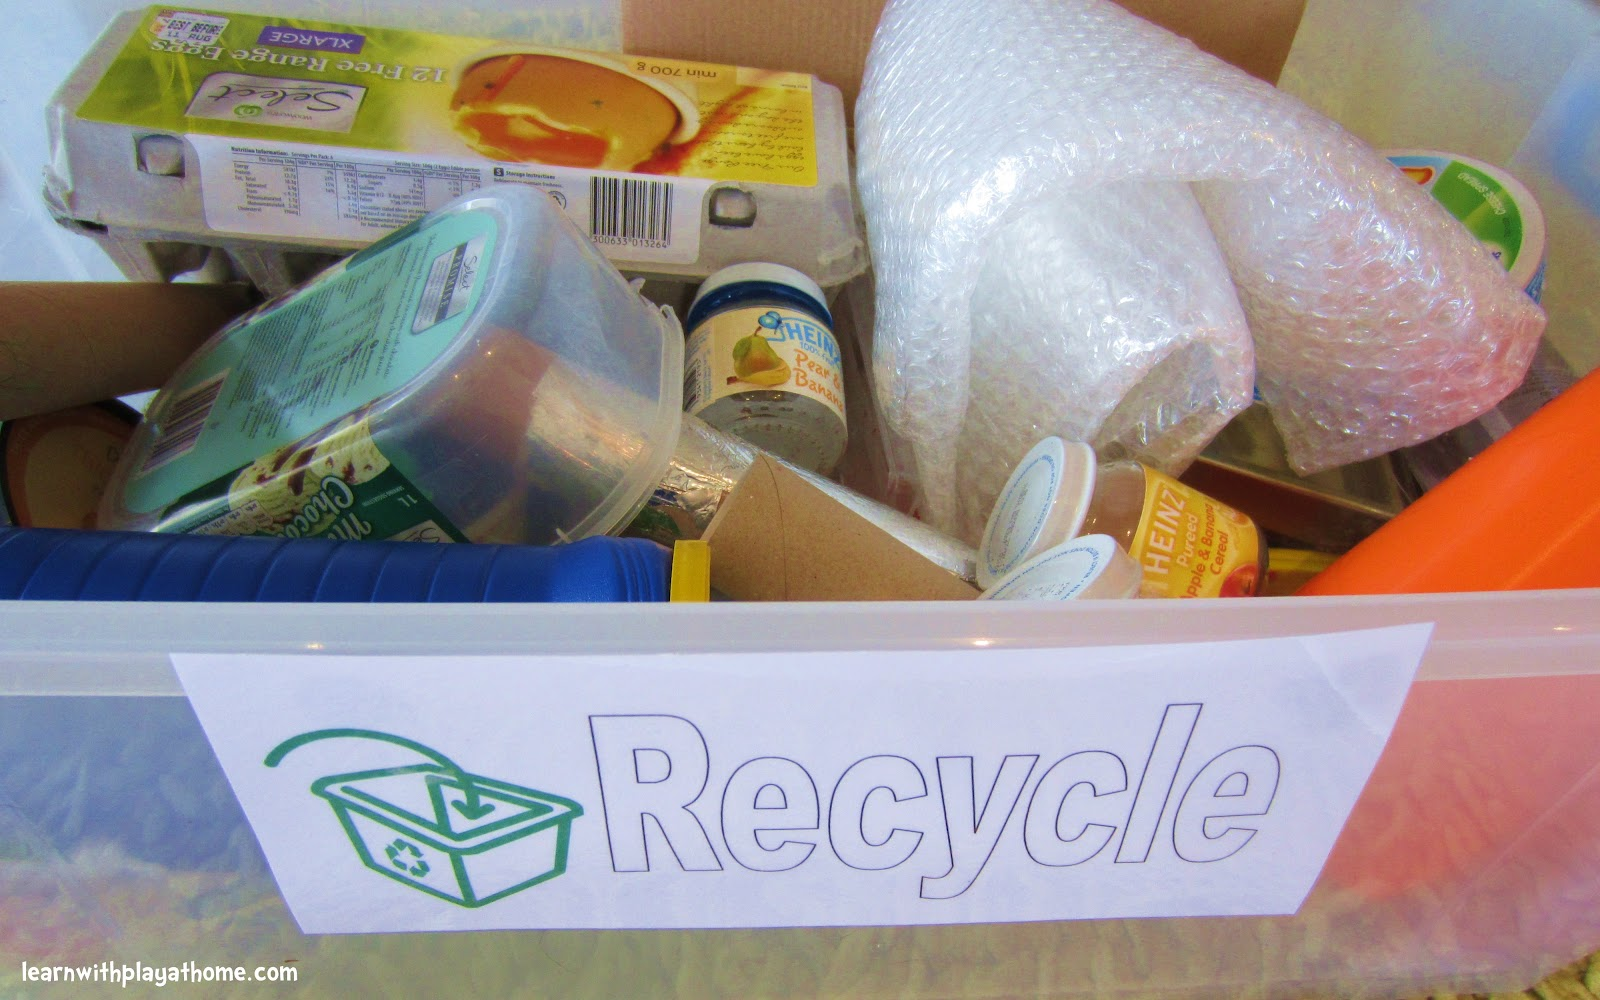 Learn With Play At Home Recycling Sorting Activity Free Printable Recycling Signs Amp Ebooks